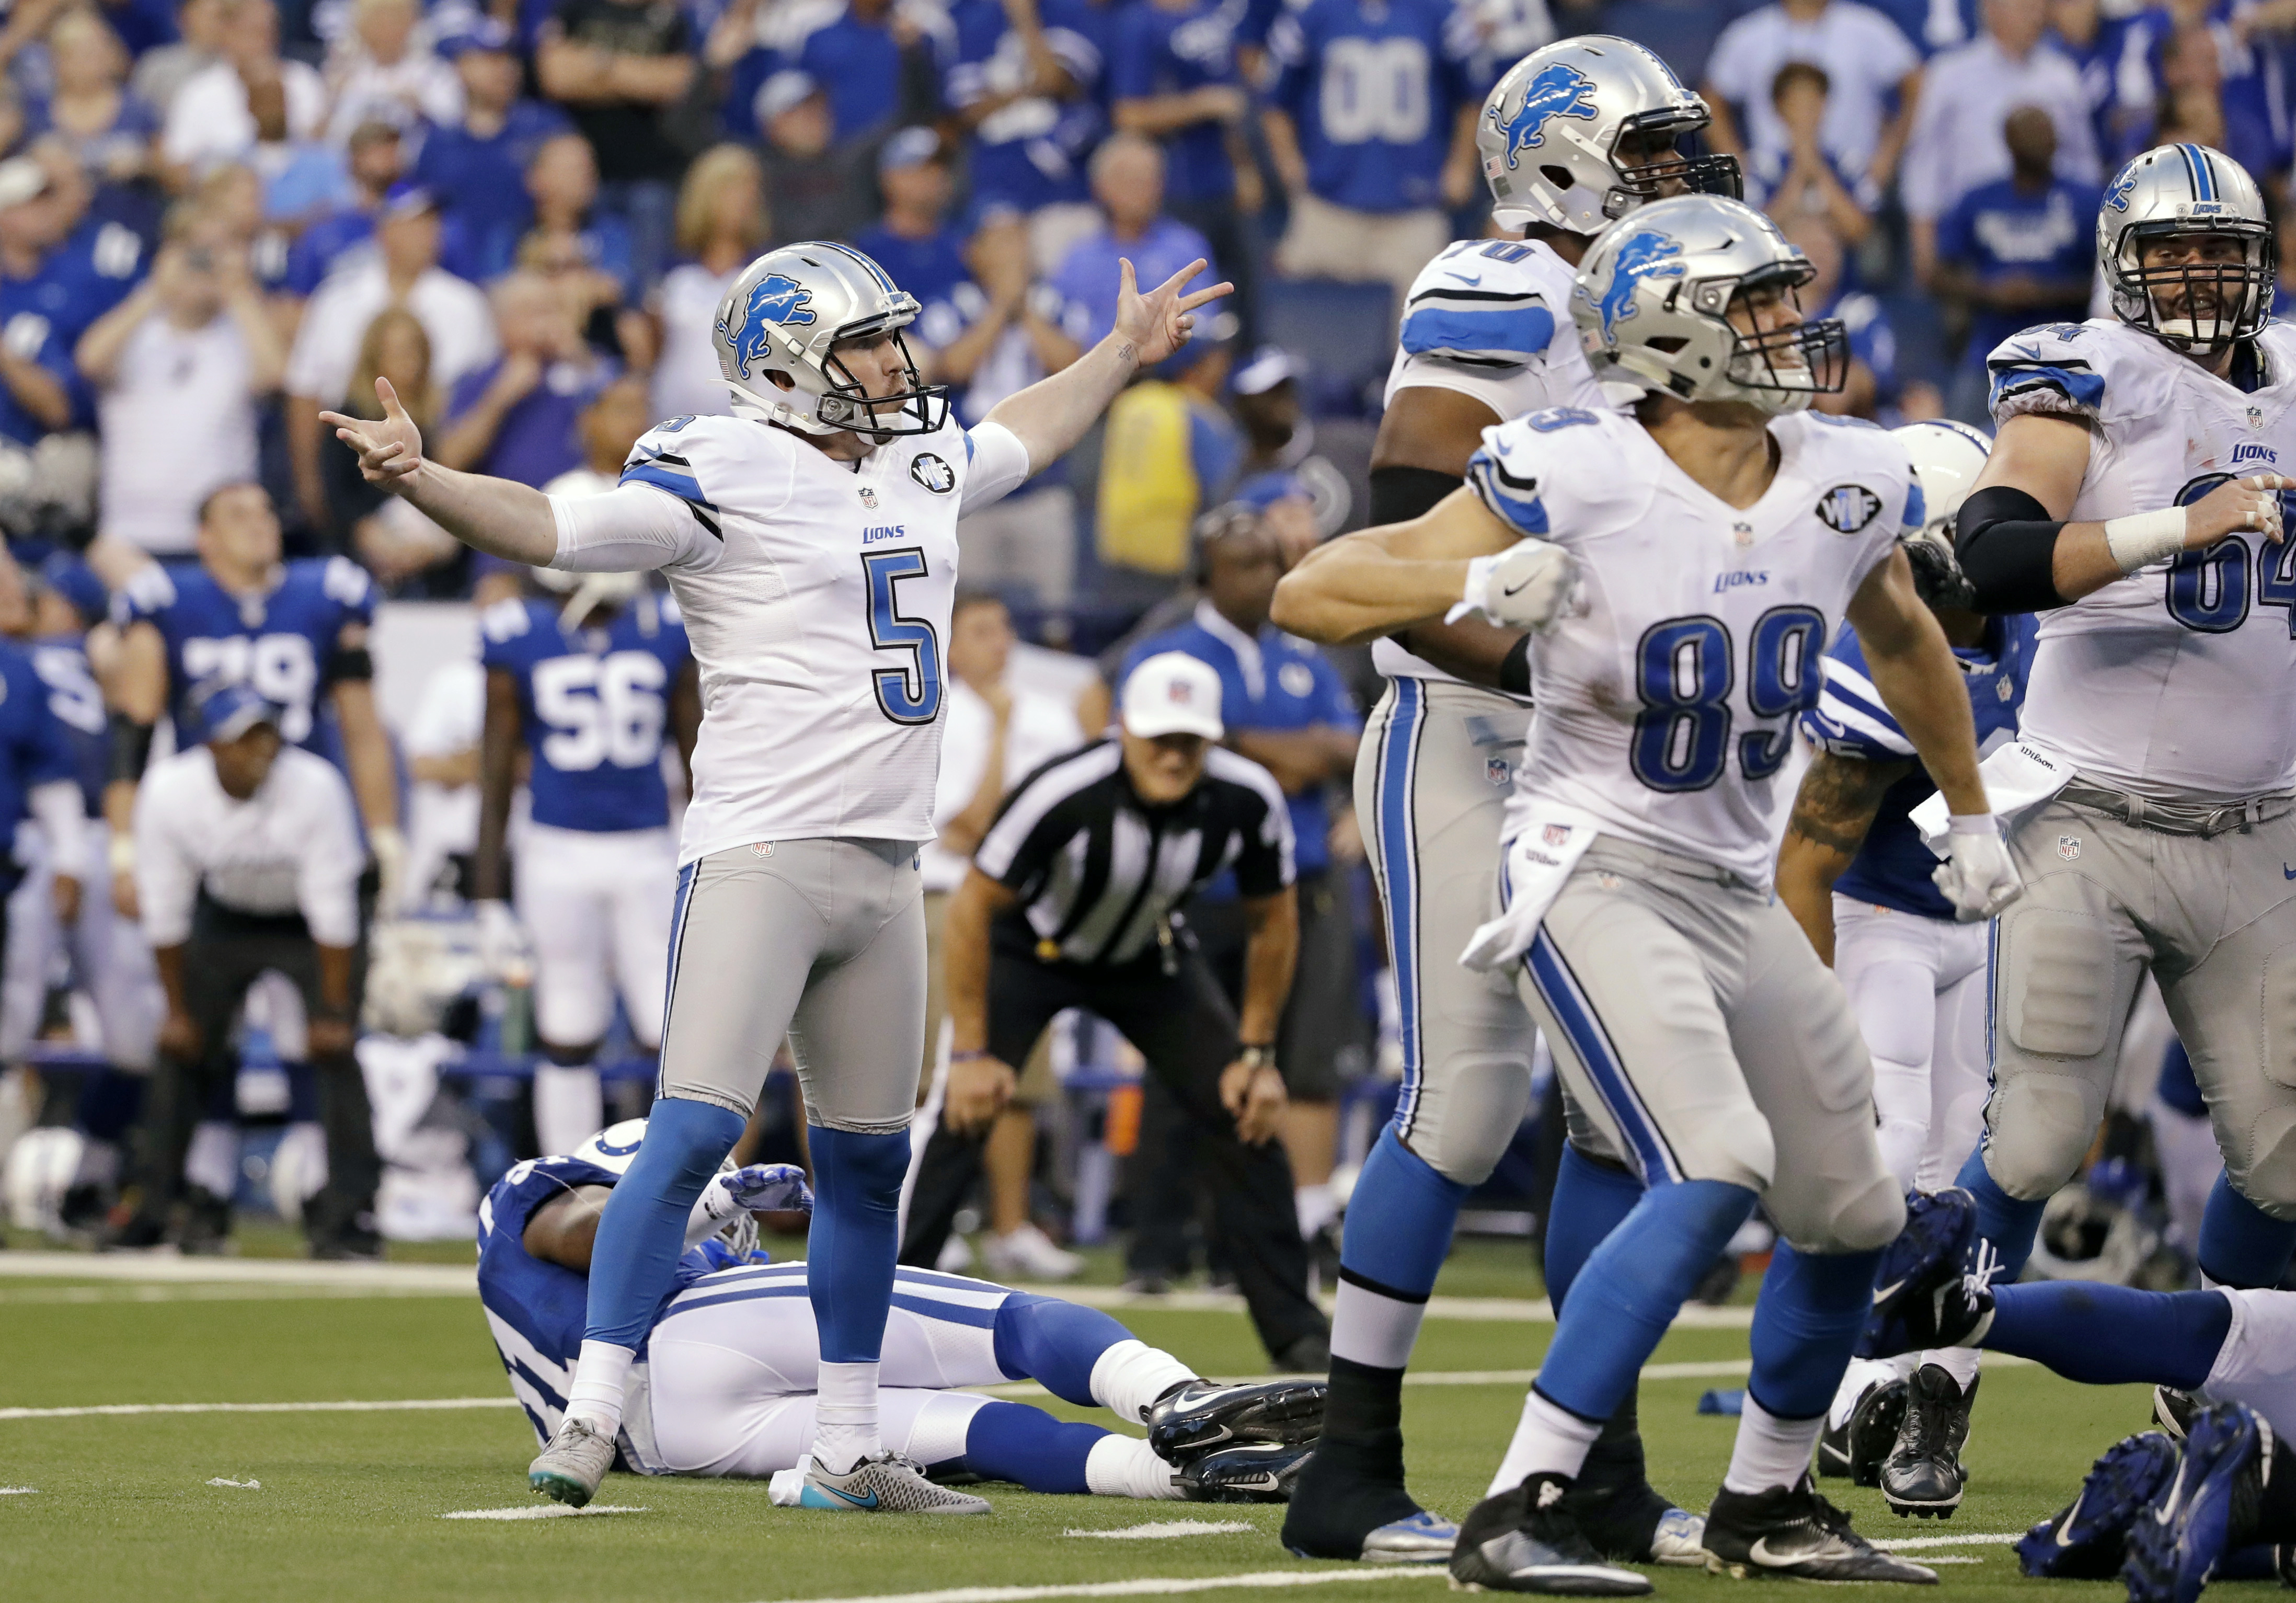 Detroit Lions kicker Matt Prater (5) celebrates a game-winning field goal in the final seconds of the game against the Indianapolis Colts in an NFL football game in Indianapolis, Sunday, Sept. 11, 2016. The Lions defeated the Colts 39-35. (AP Photo/Jeff R